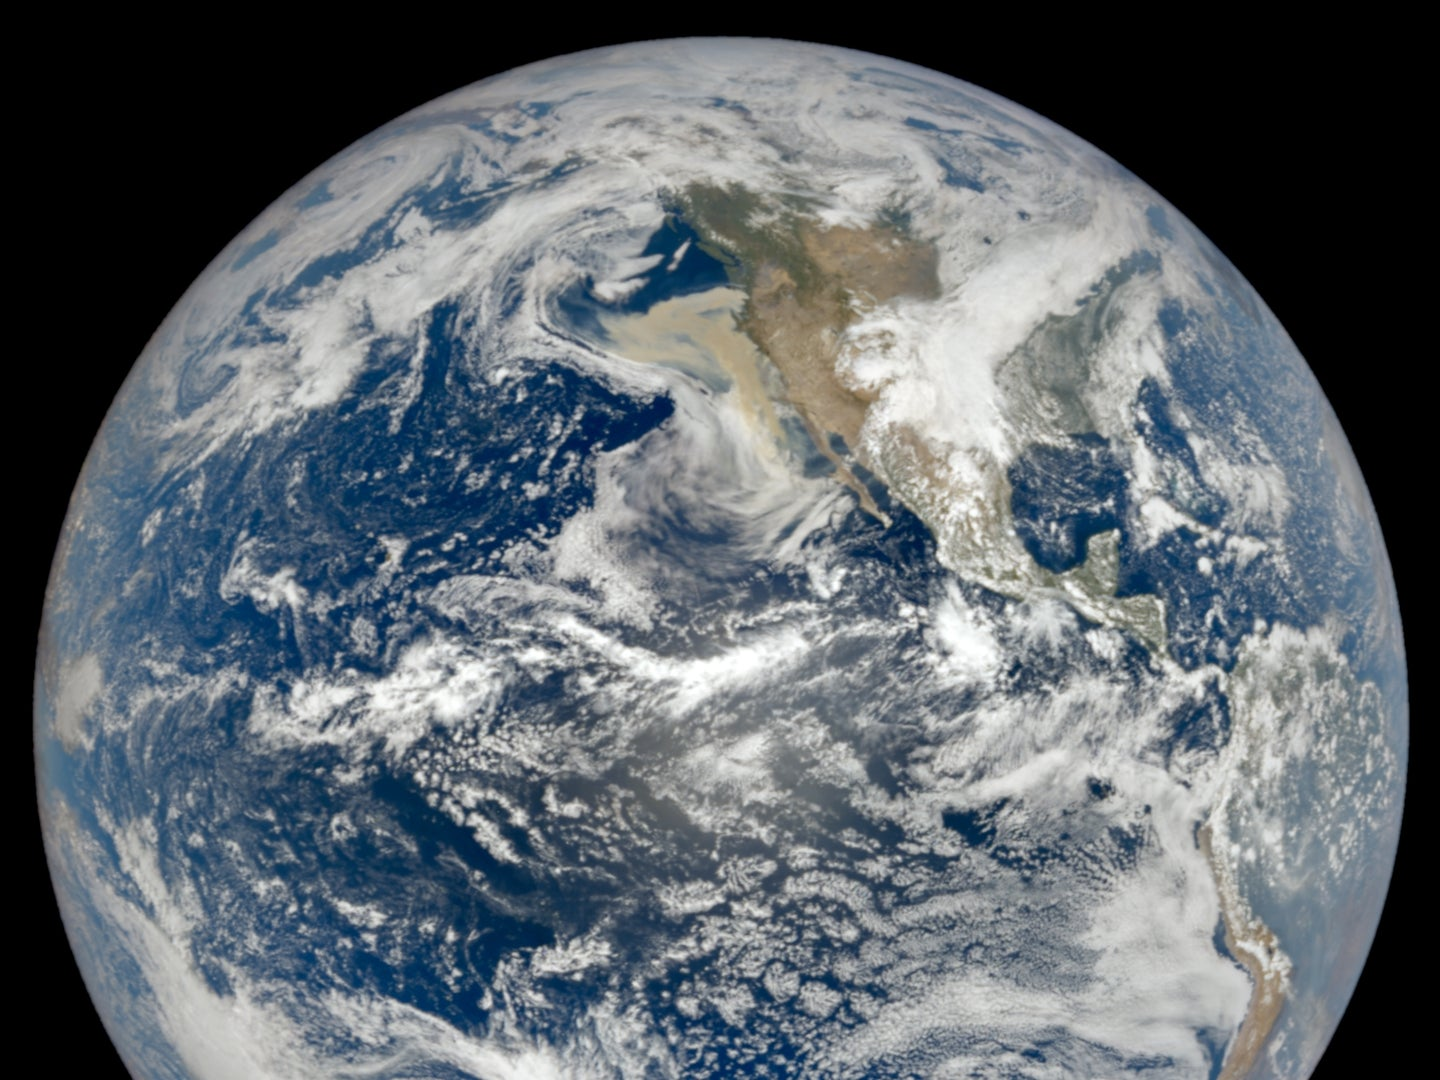 The photo was taken by NASA's camera EPIC, which takes pictures of the planet every two hour  from NOAA's satellite DSCOVR. You can spot the plume of wildfire smoke off the west coast of the United States.